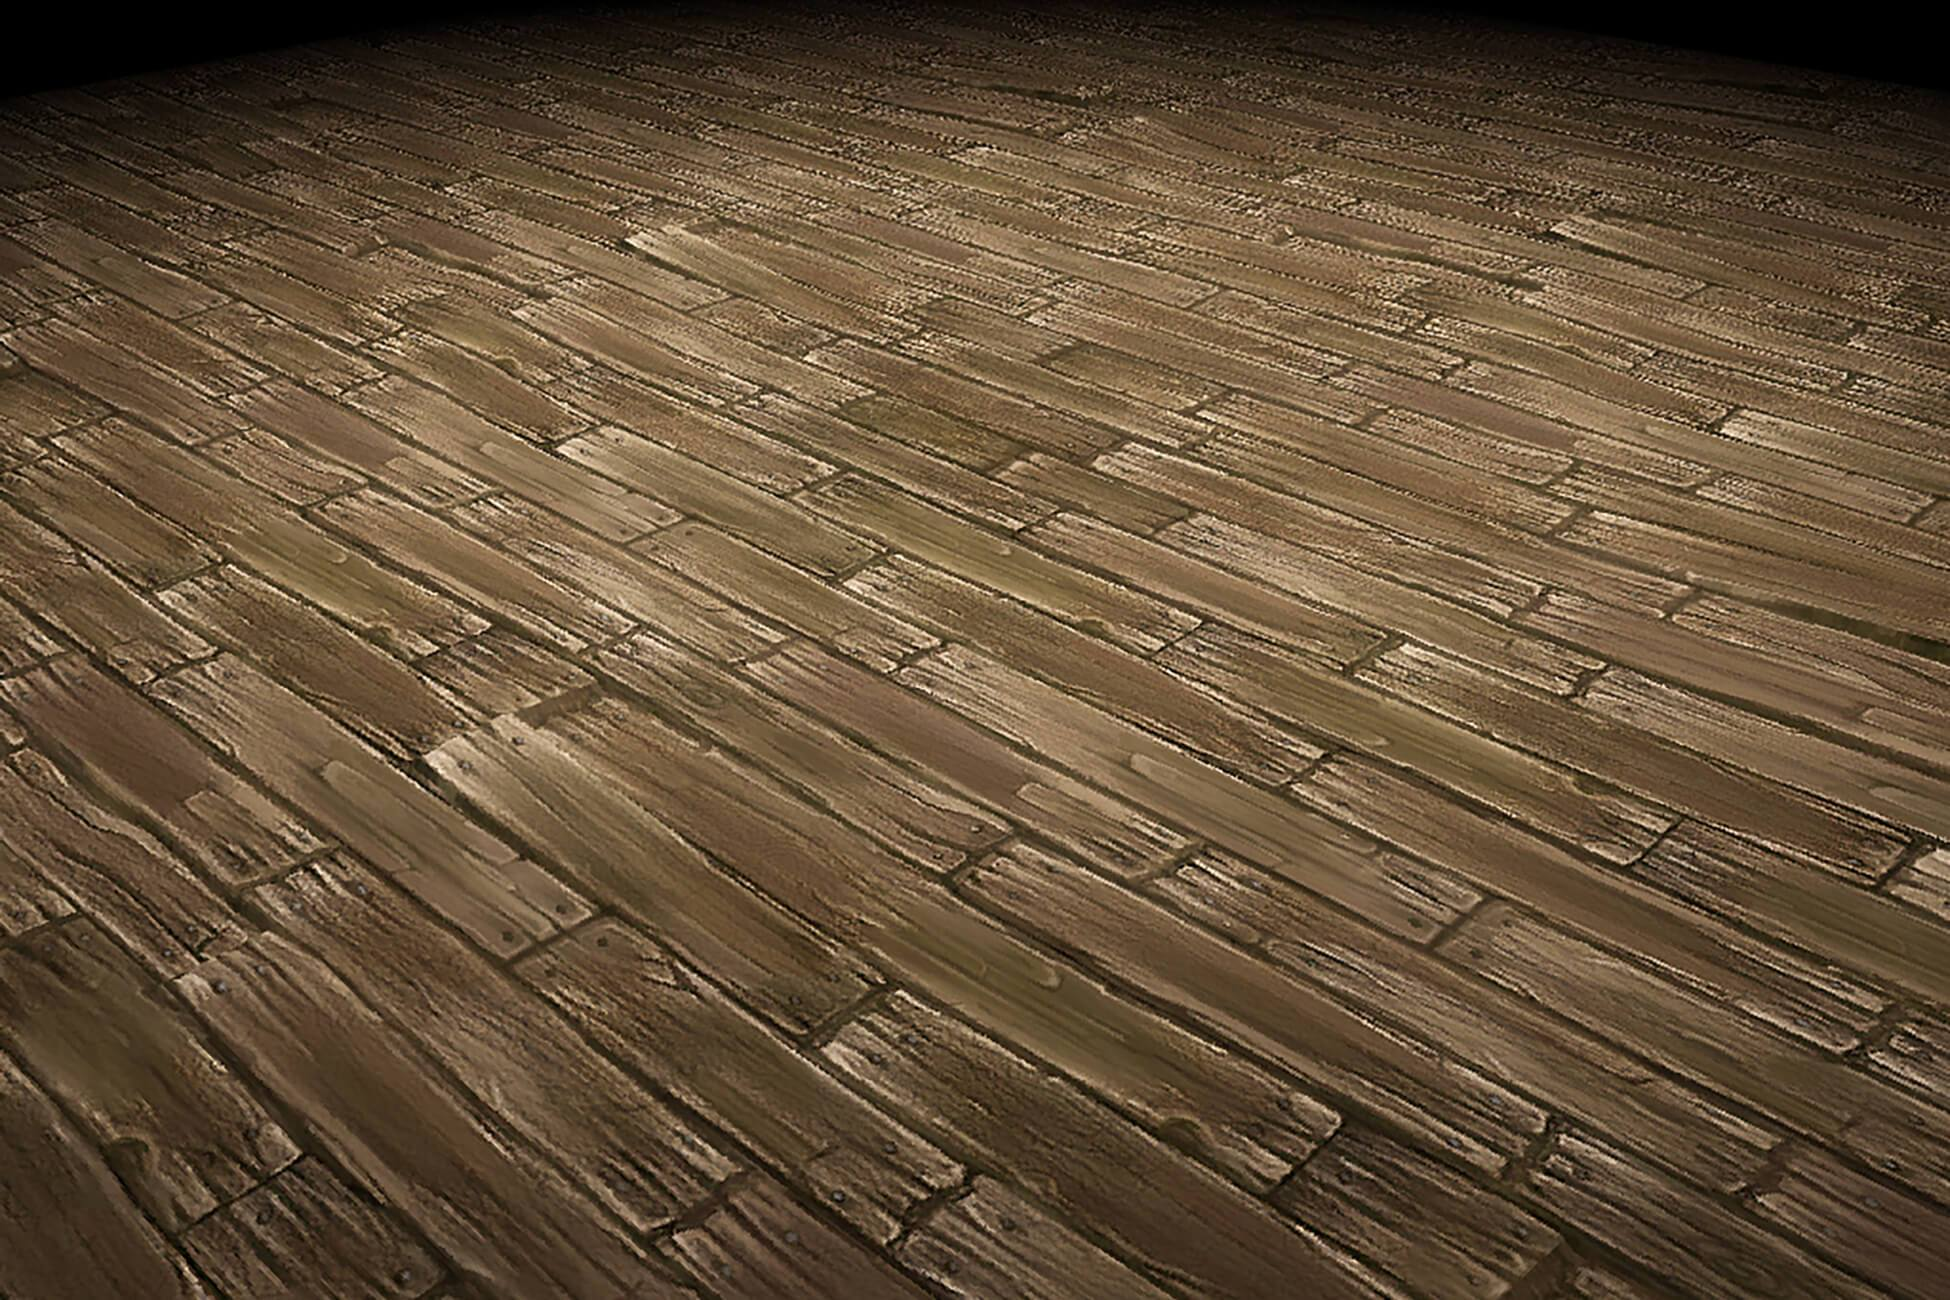 Wood Floor Old Planks Hand Painted Texture